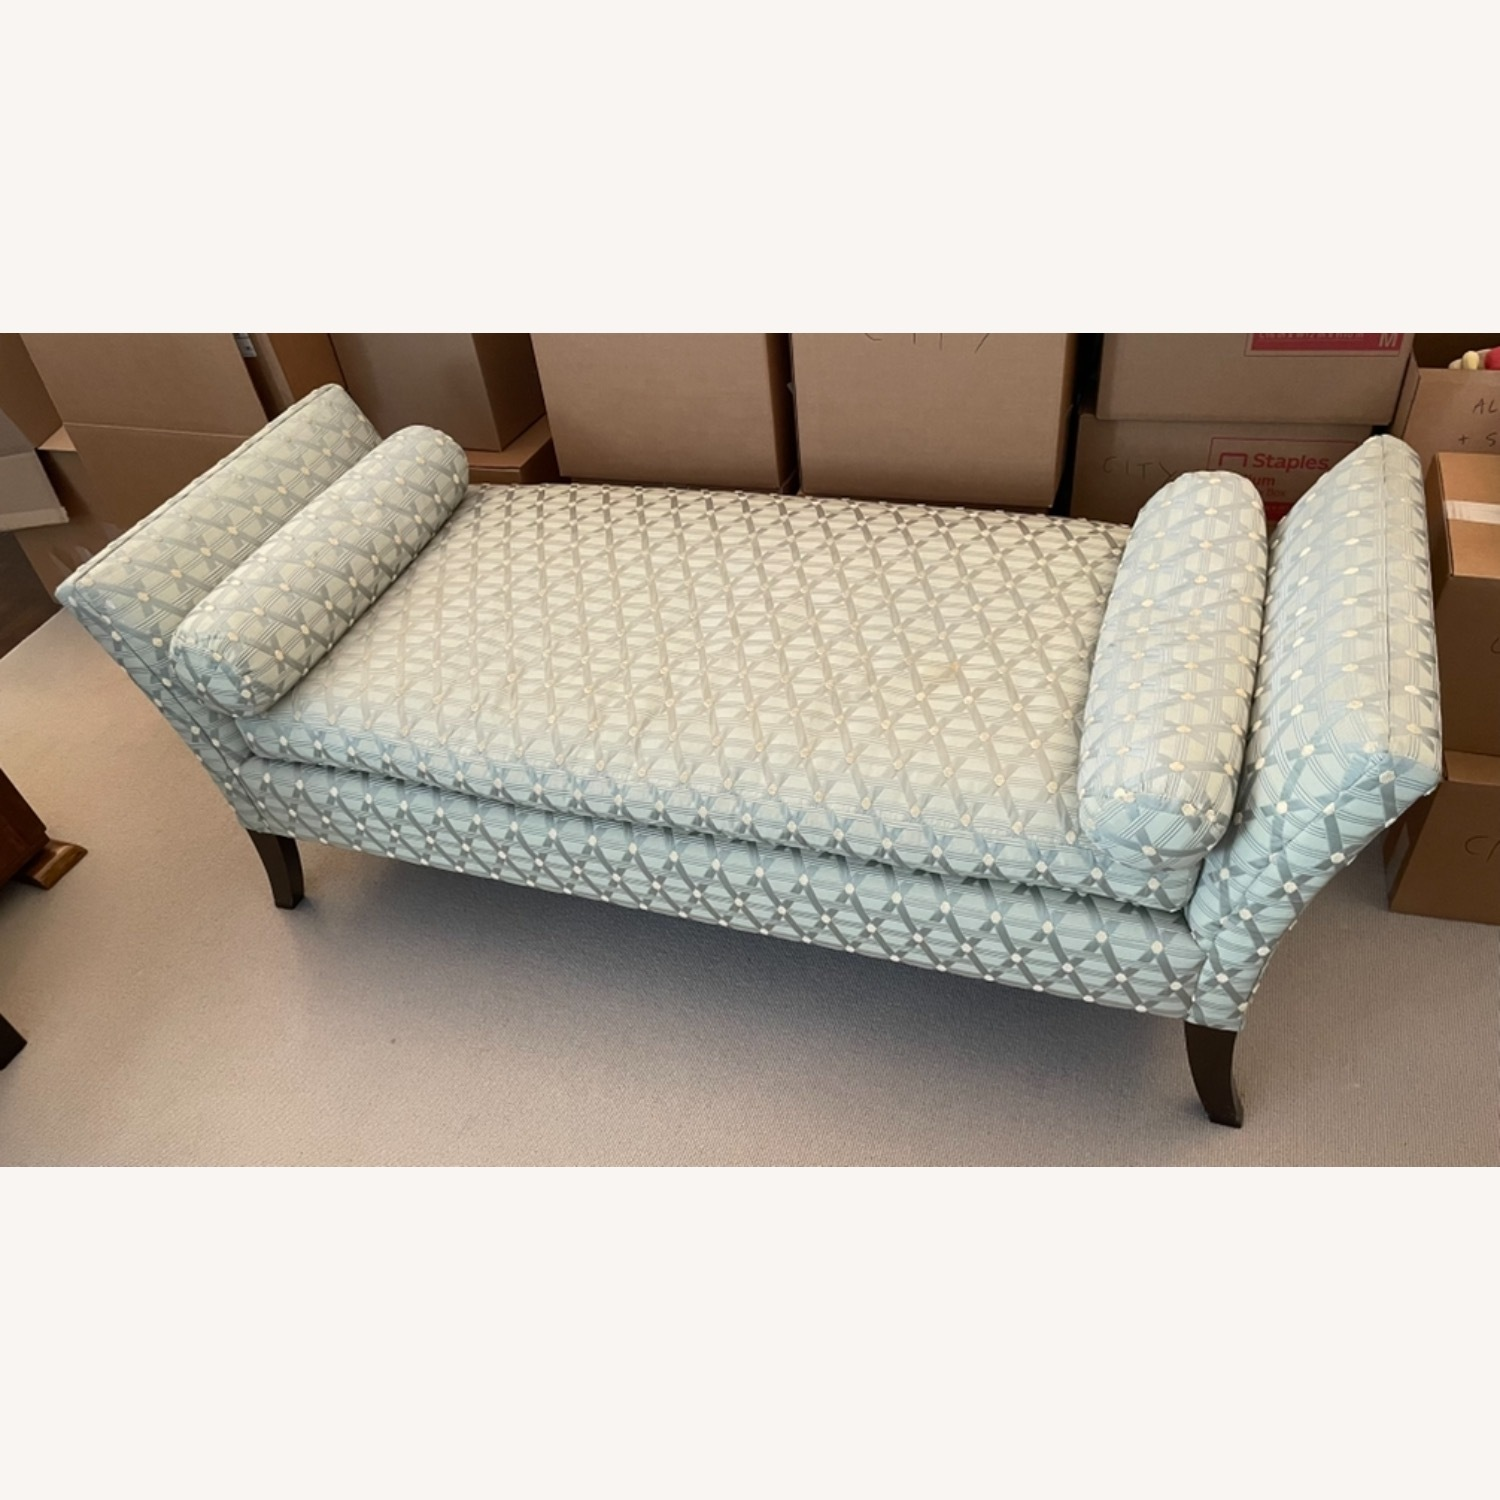 Seafoam Patterned Daybed - image-1